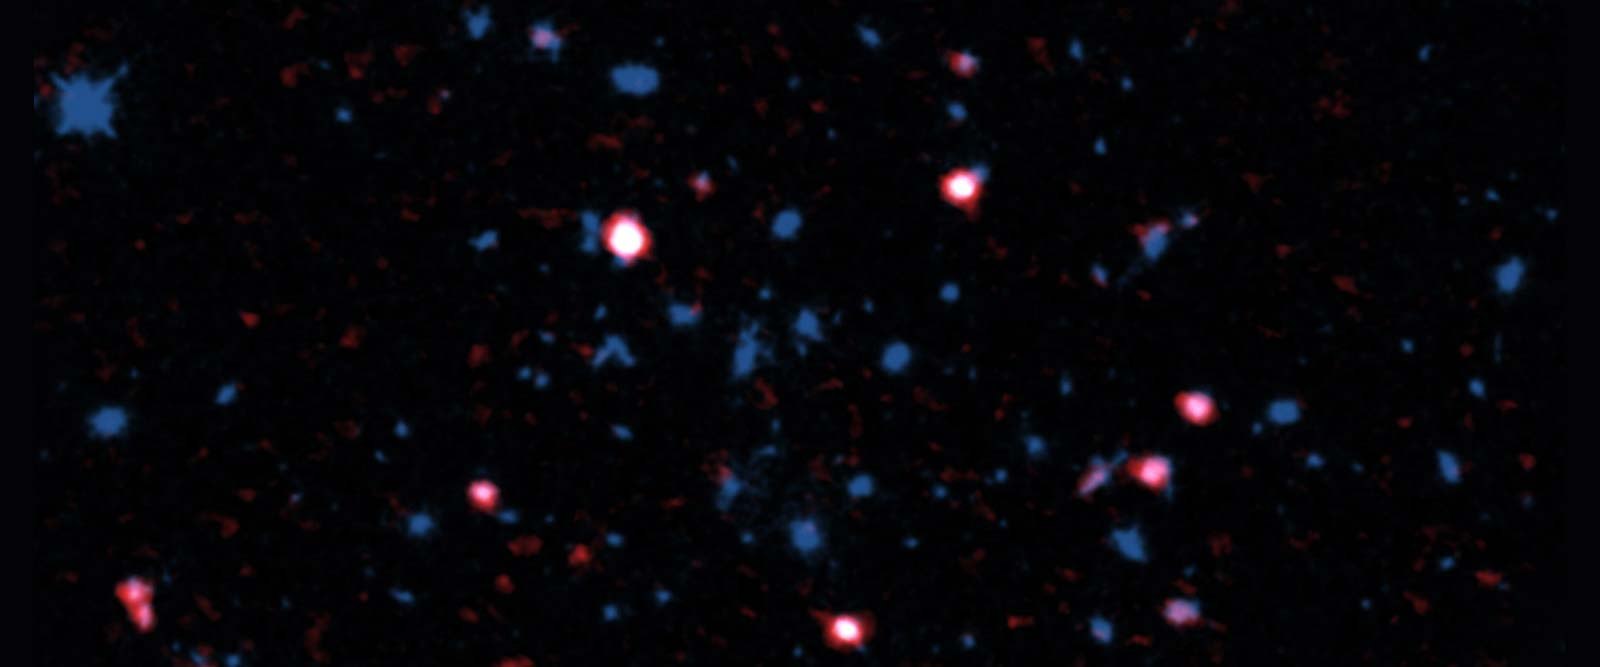 Hot cluster wind robs galaxies of stellar building material